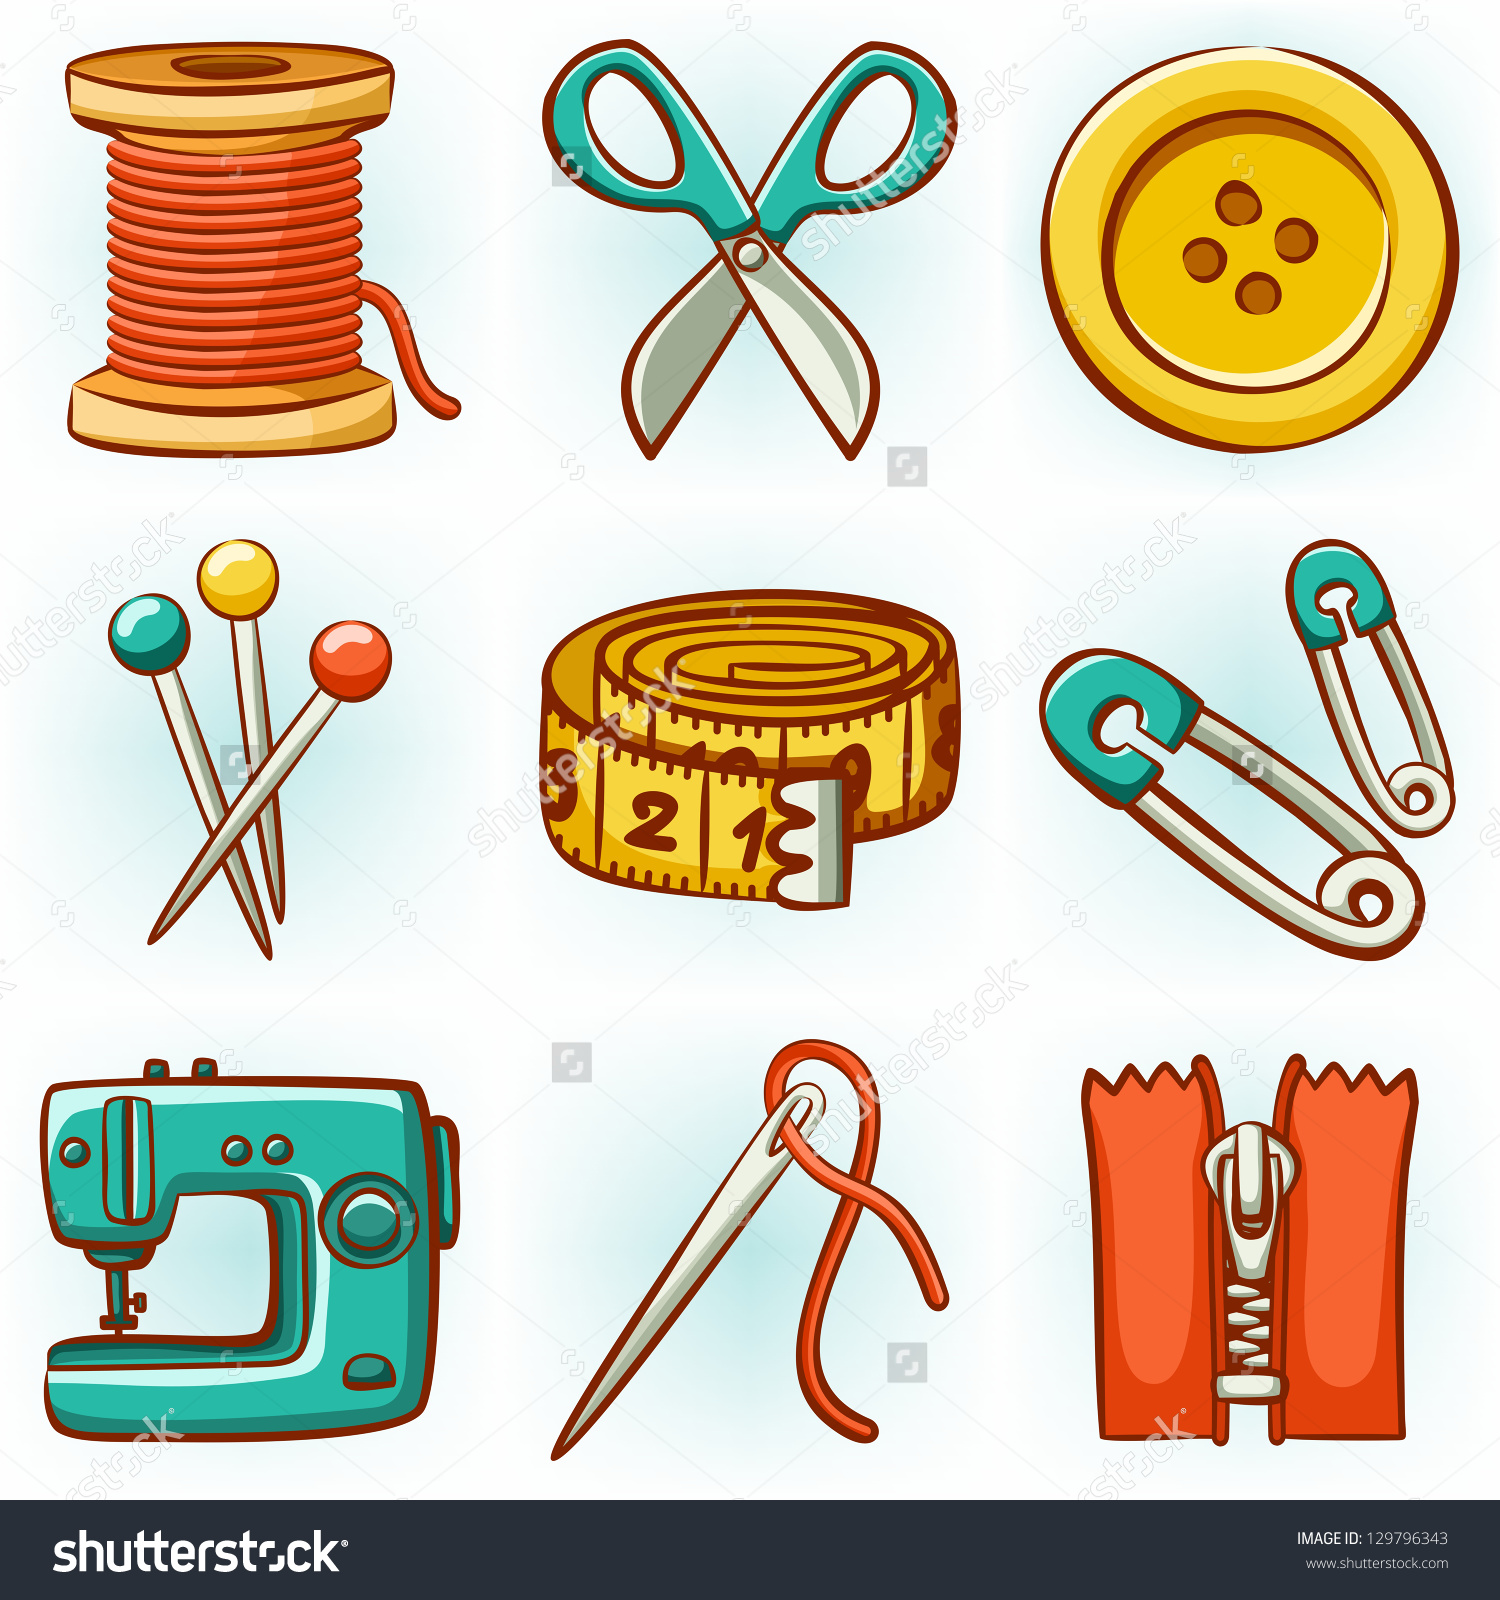 Set 9 Sewing Tools Icons Stock Vector 129796343.